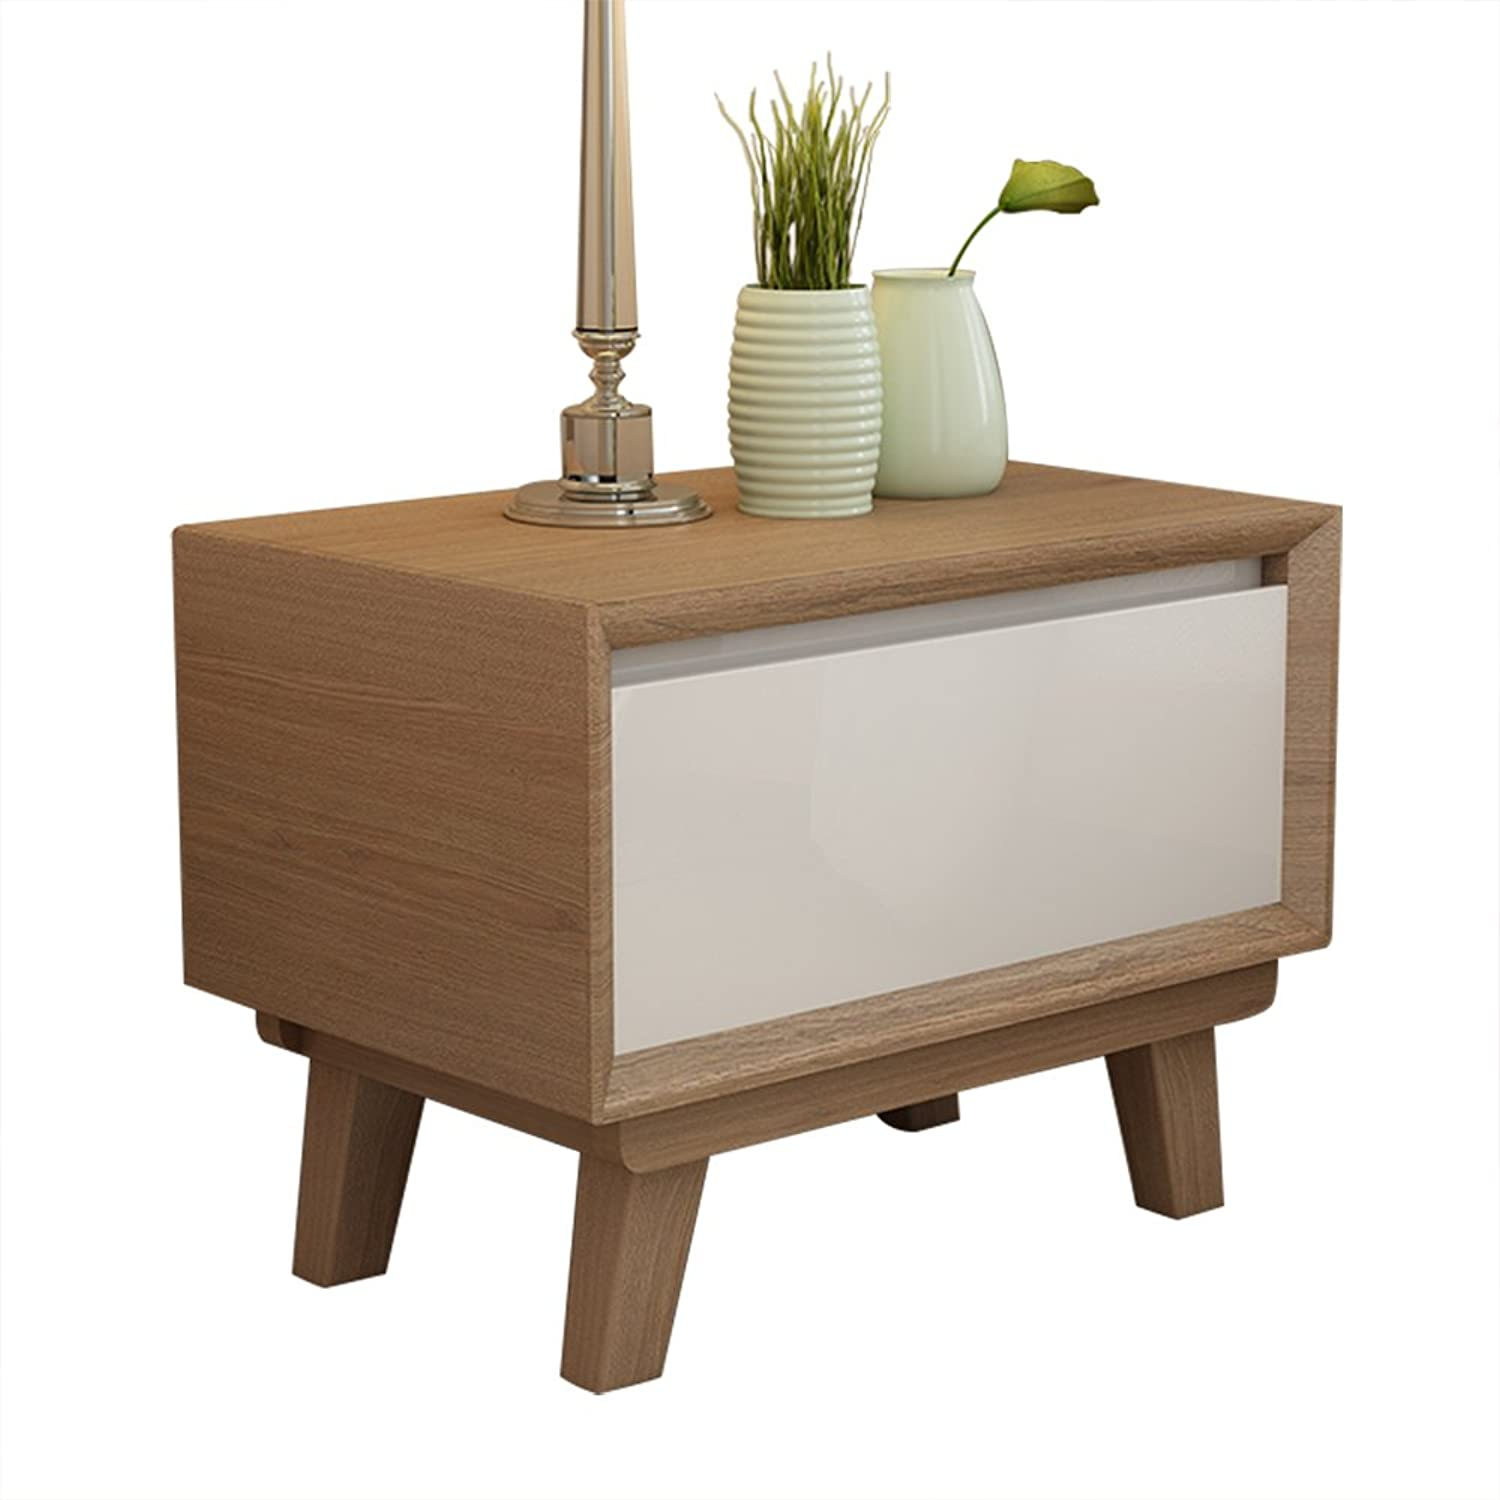 Qing MEI Nordic Solid Wood Bedside Table Simple Modern Assembled Storage Cabinet Simple Bedroom Furniture Storage Cabinet (Size  45X 43.2X42CM) A++